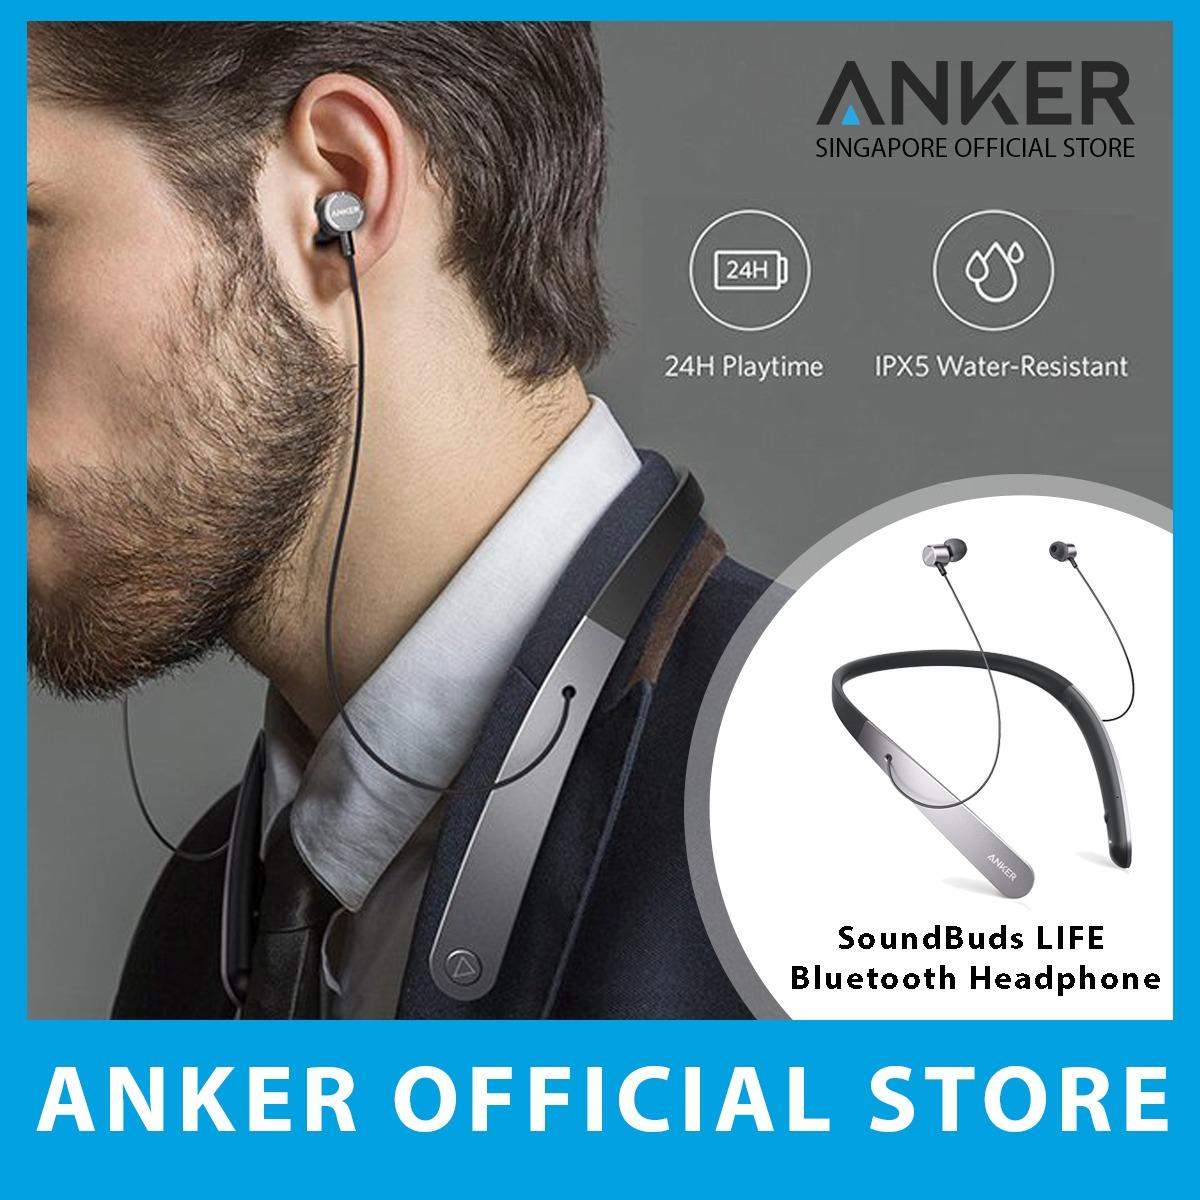 Where Can I Buy Anker Soundbuds Life Wireless Neckband Headphones